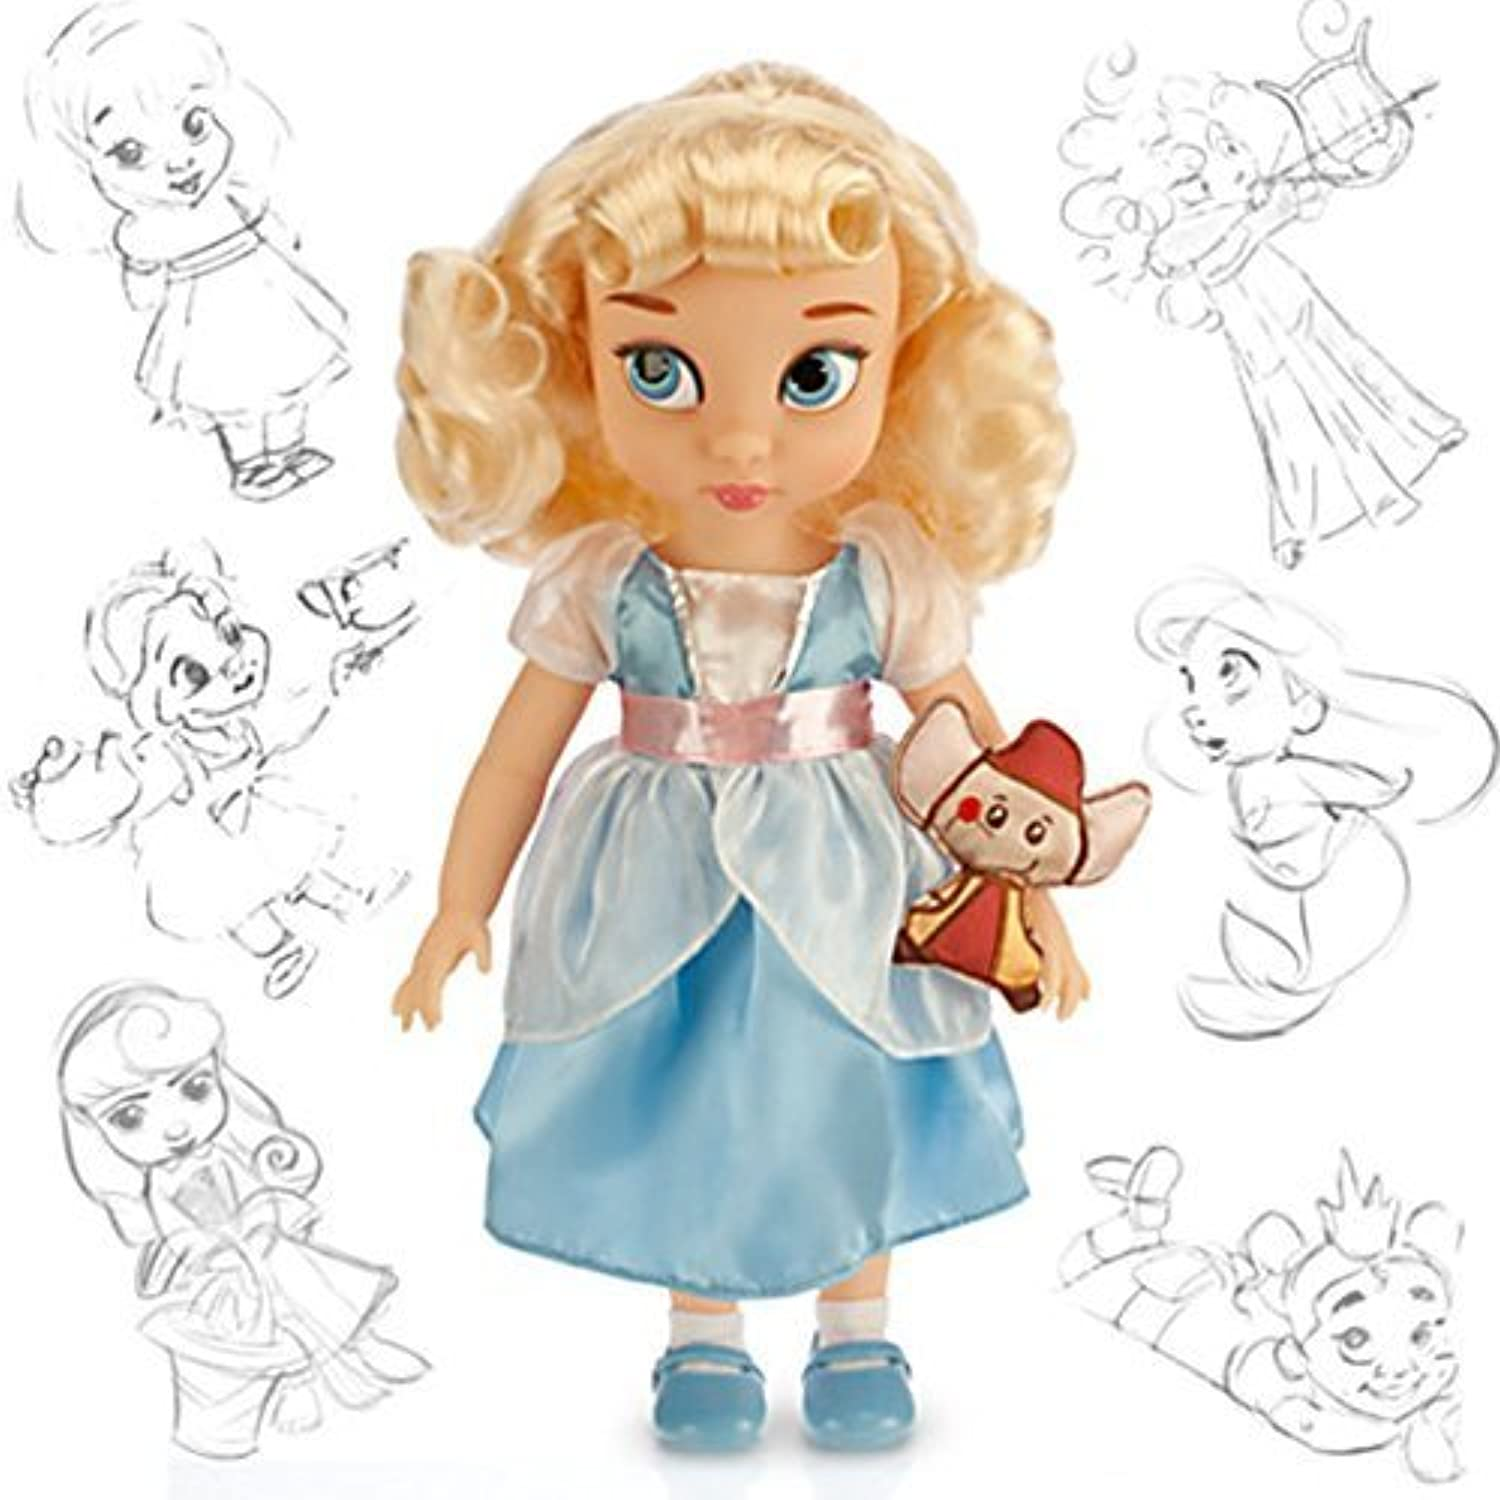 Disney Princess Animators' Collection Toddler Doll 16'' H  Cinderella with Plush Friend Jaq by Disney